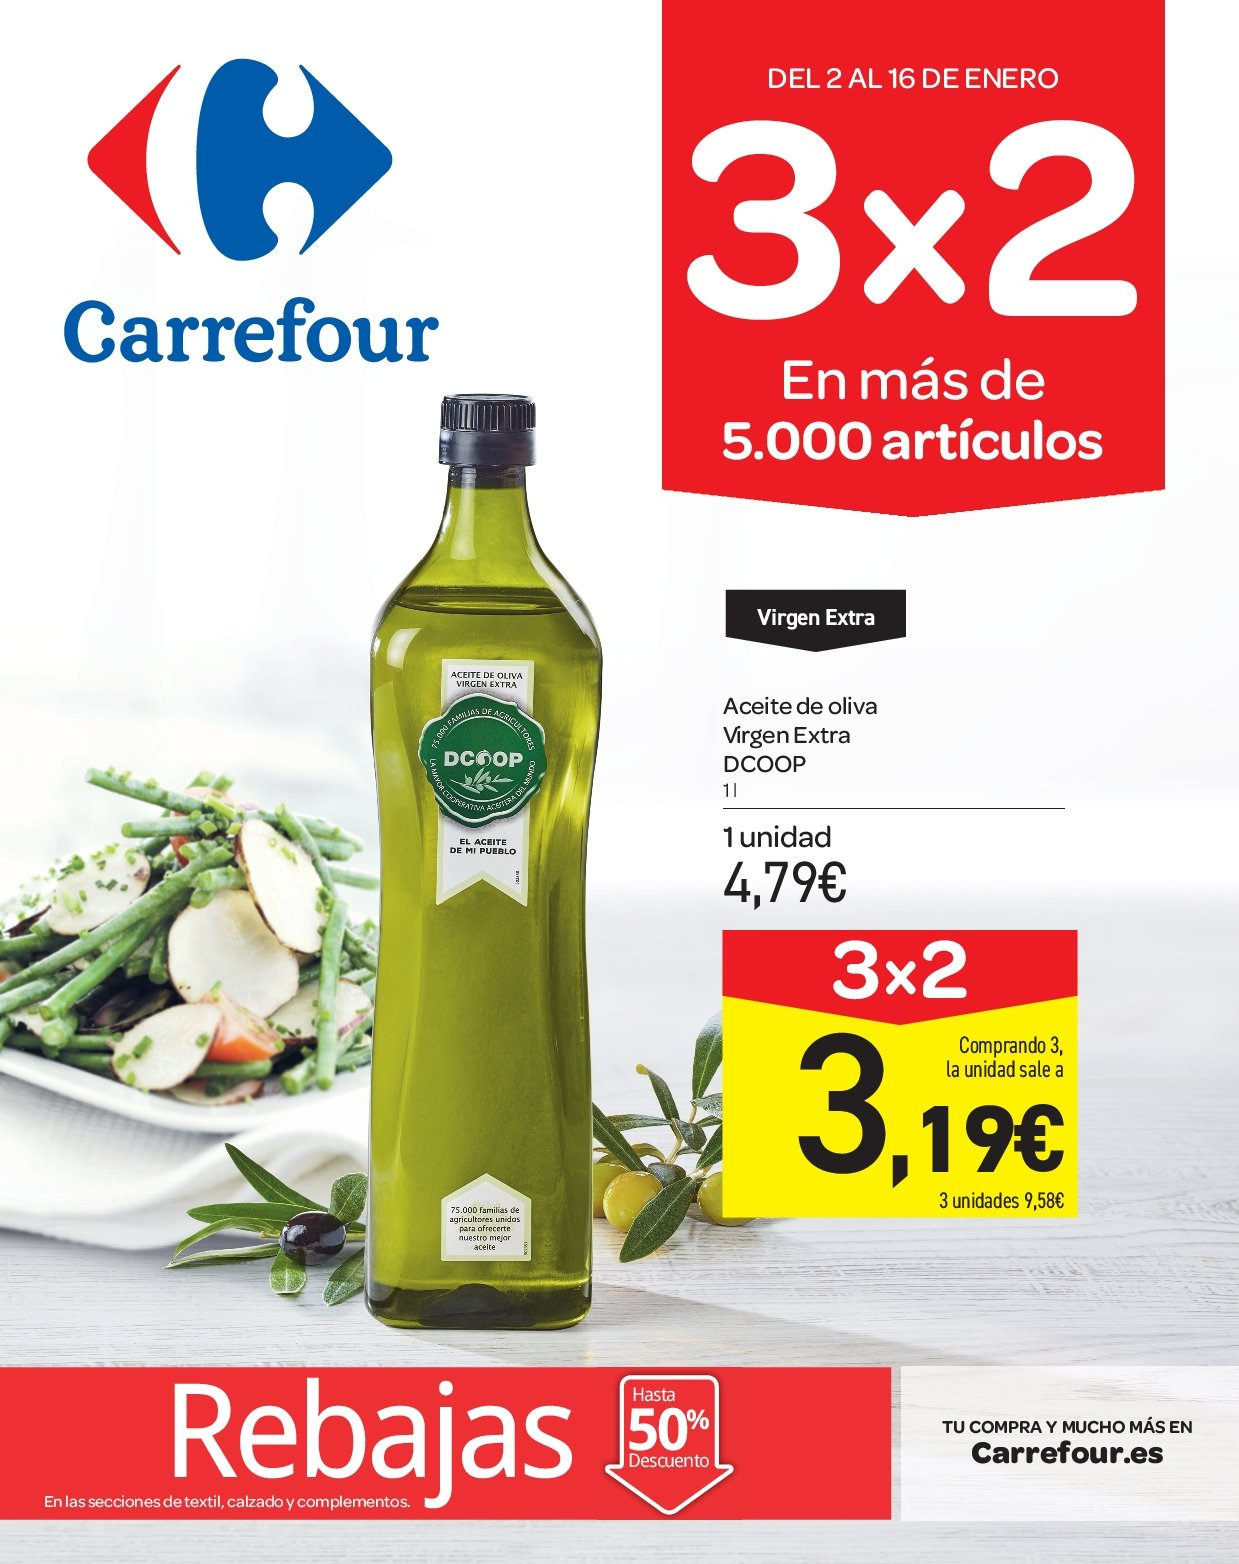 Folleto actual Carrefour - 2.1.2019 - 16.1.2019 - Ventas - aceite a67a1fca7927